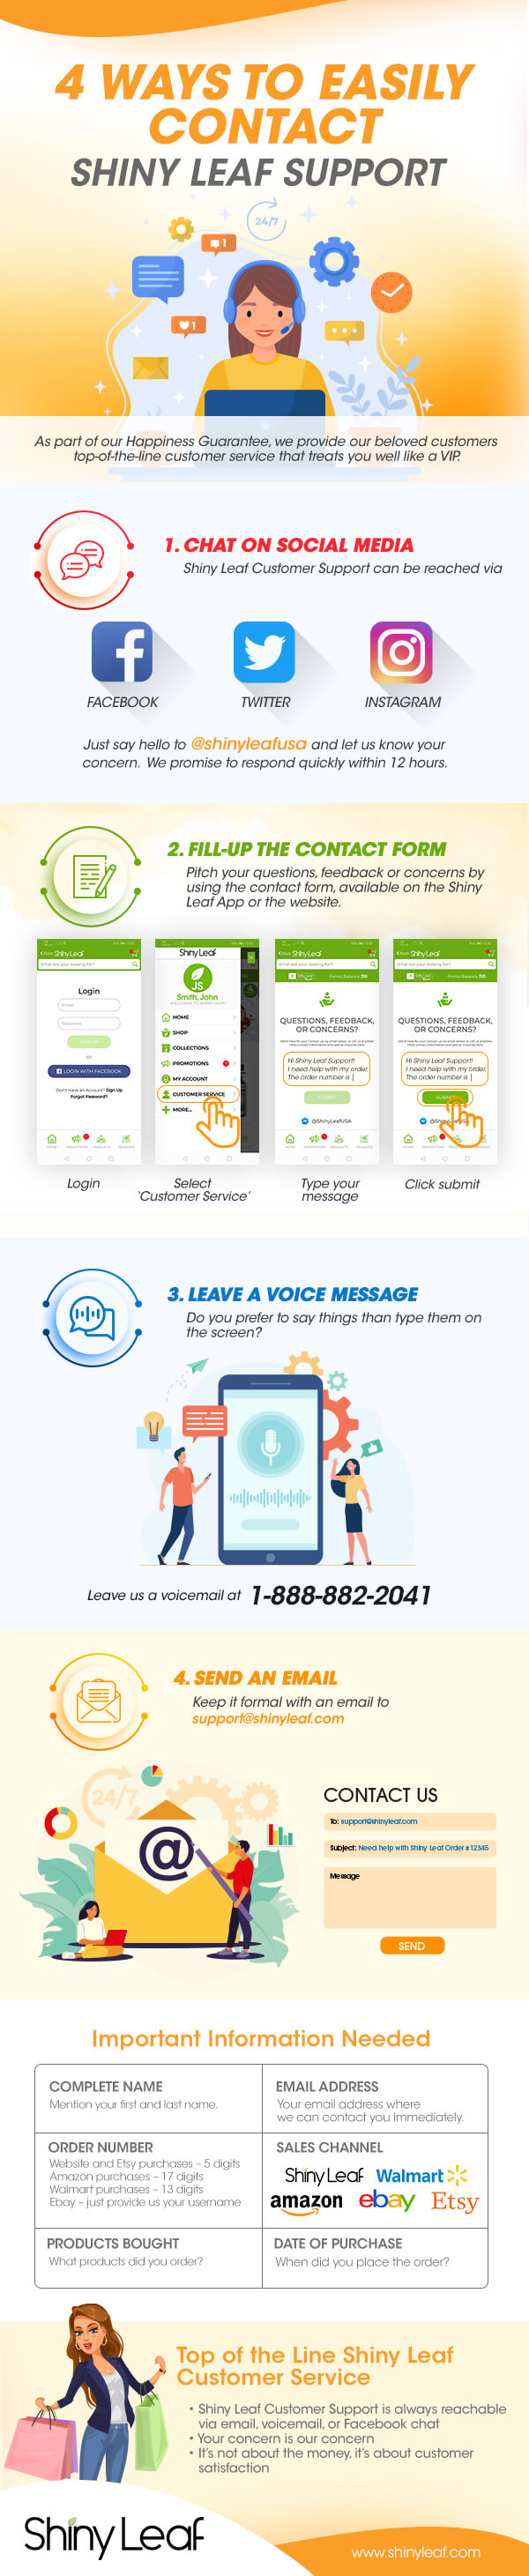 4 Ways to Contact Shiny Leaf Support Infographic